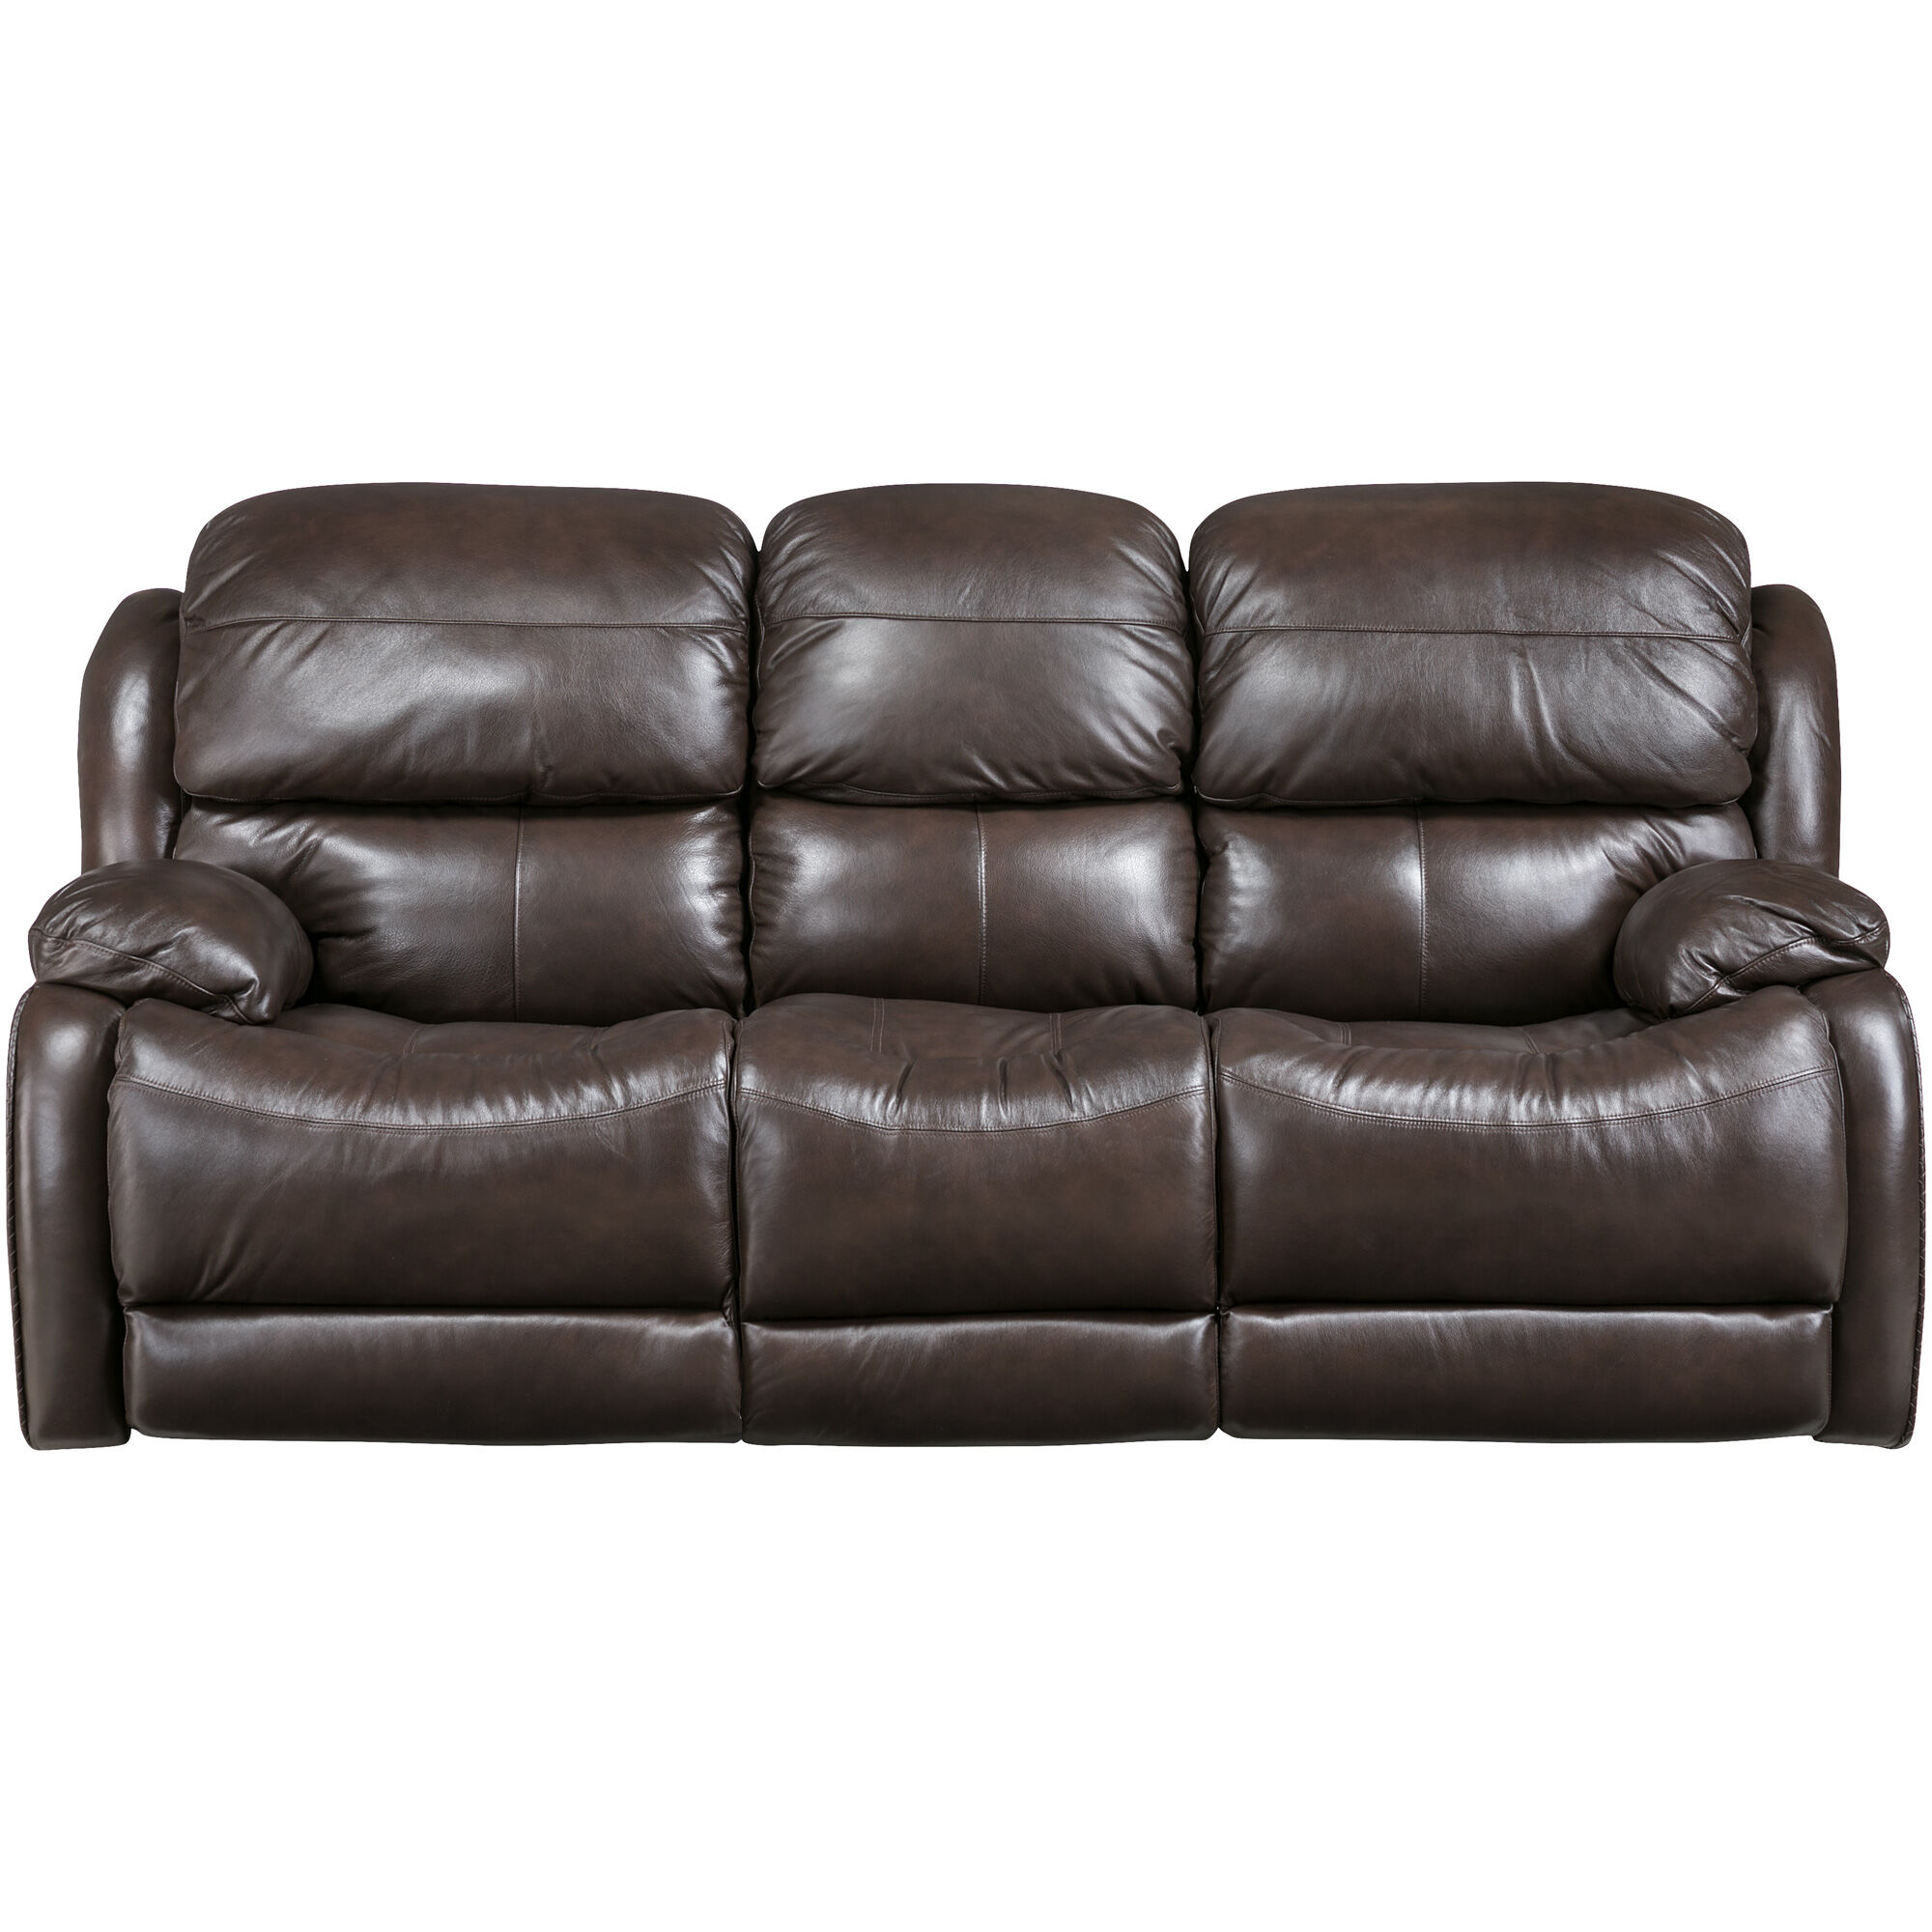 palmer sofa how to build a from scratch slumberland furniture brown power reclining